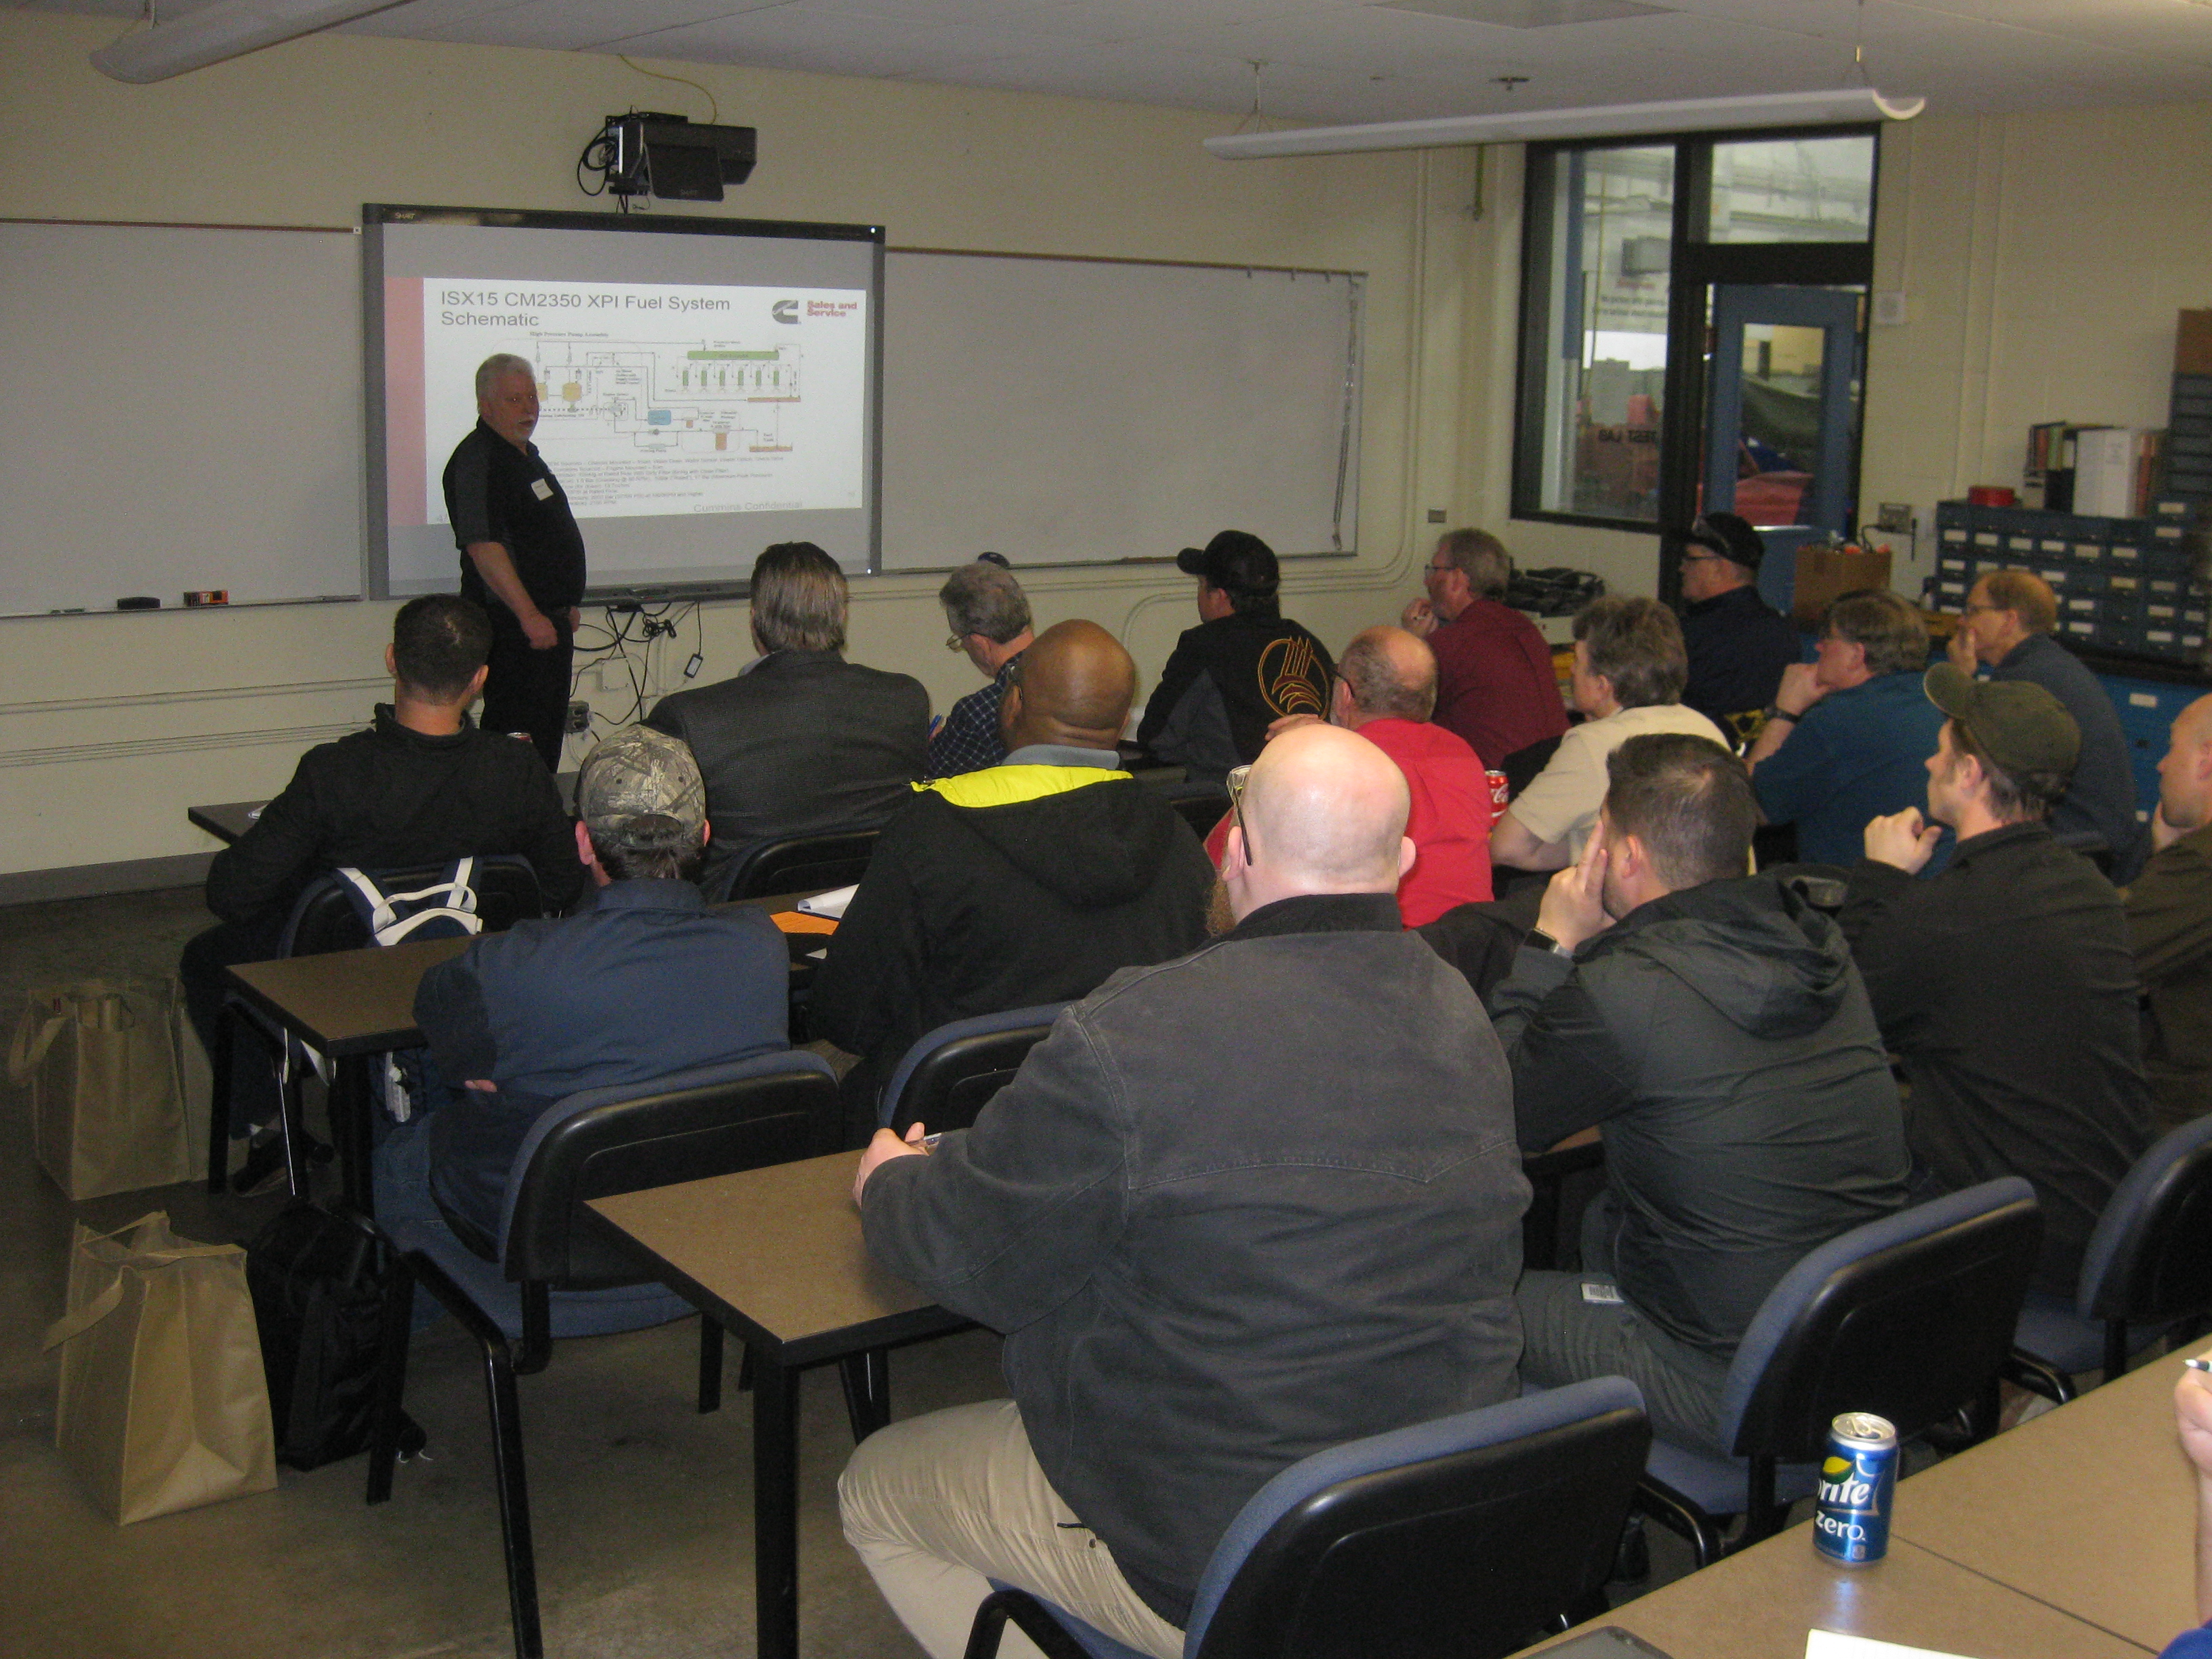 Diesel Instructors Become Students News At Pcc Electrical Schematic Classes Programs Are Constantly Upping Their Game To Stay Up Speed With Technologies That Advance Fuel Systems Hydraulics And